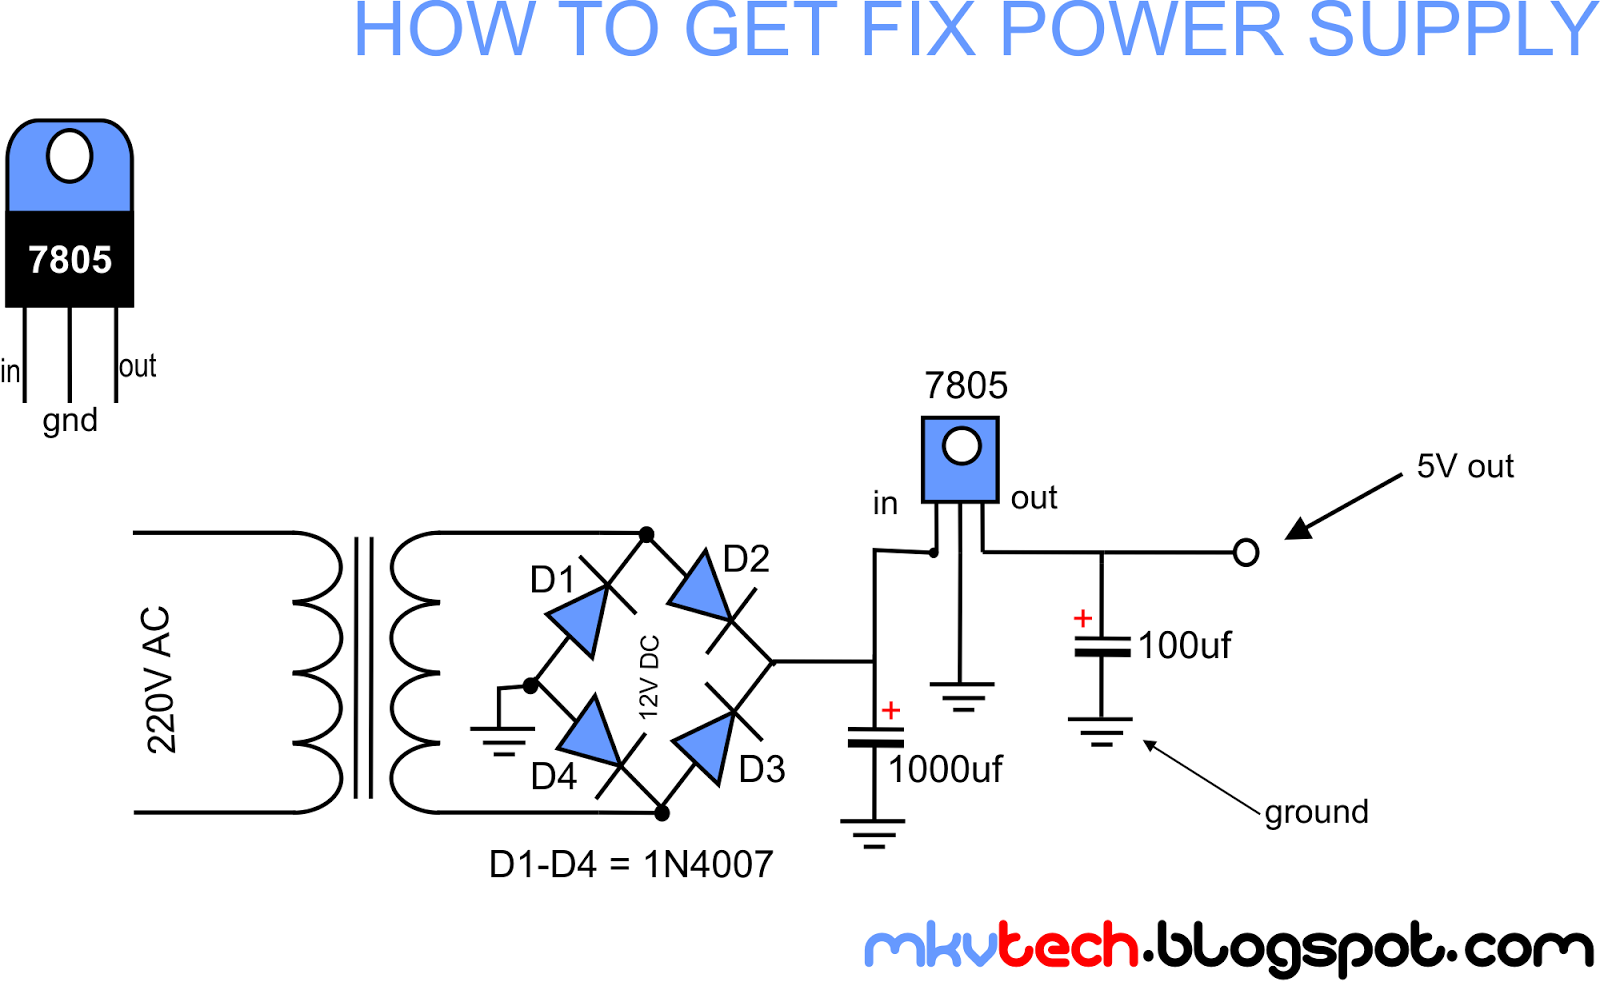 small resolution of the circuit diagram shown above shows how to connect a linear regulator to create a fixed power supply to your load in this diagram we are going to use